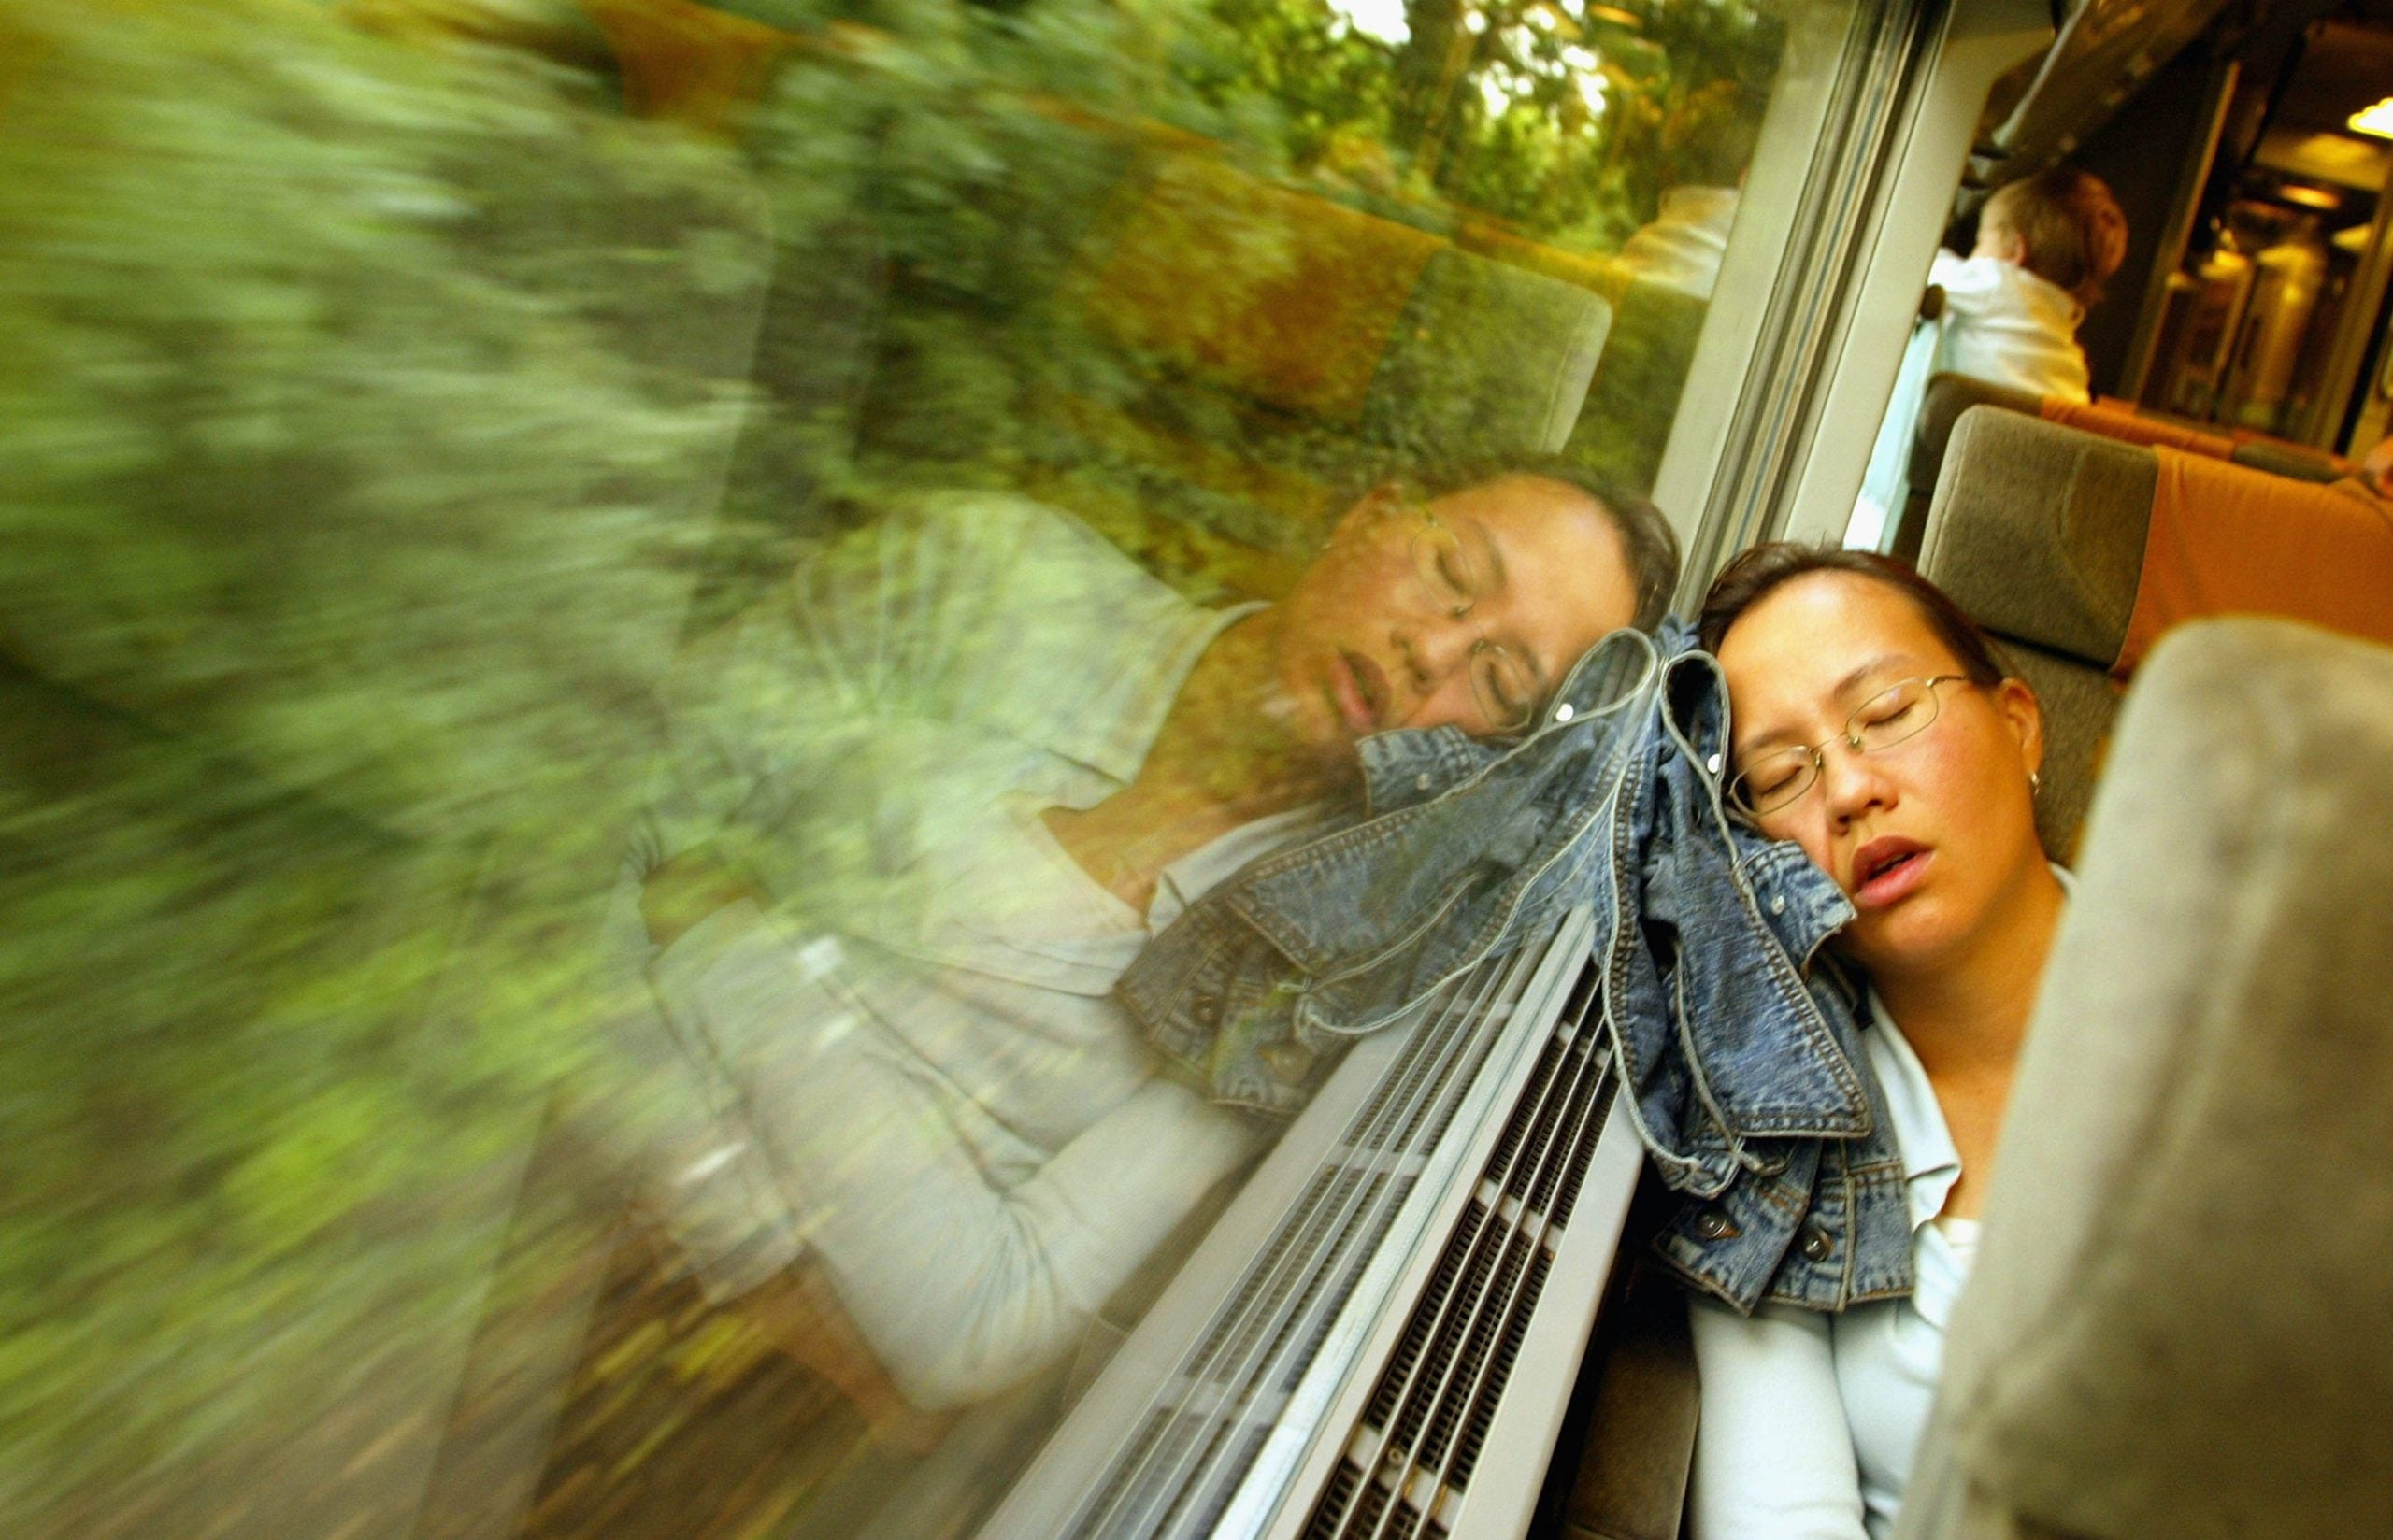 Out like a light: why bad sleep poses a danger to us all